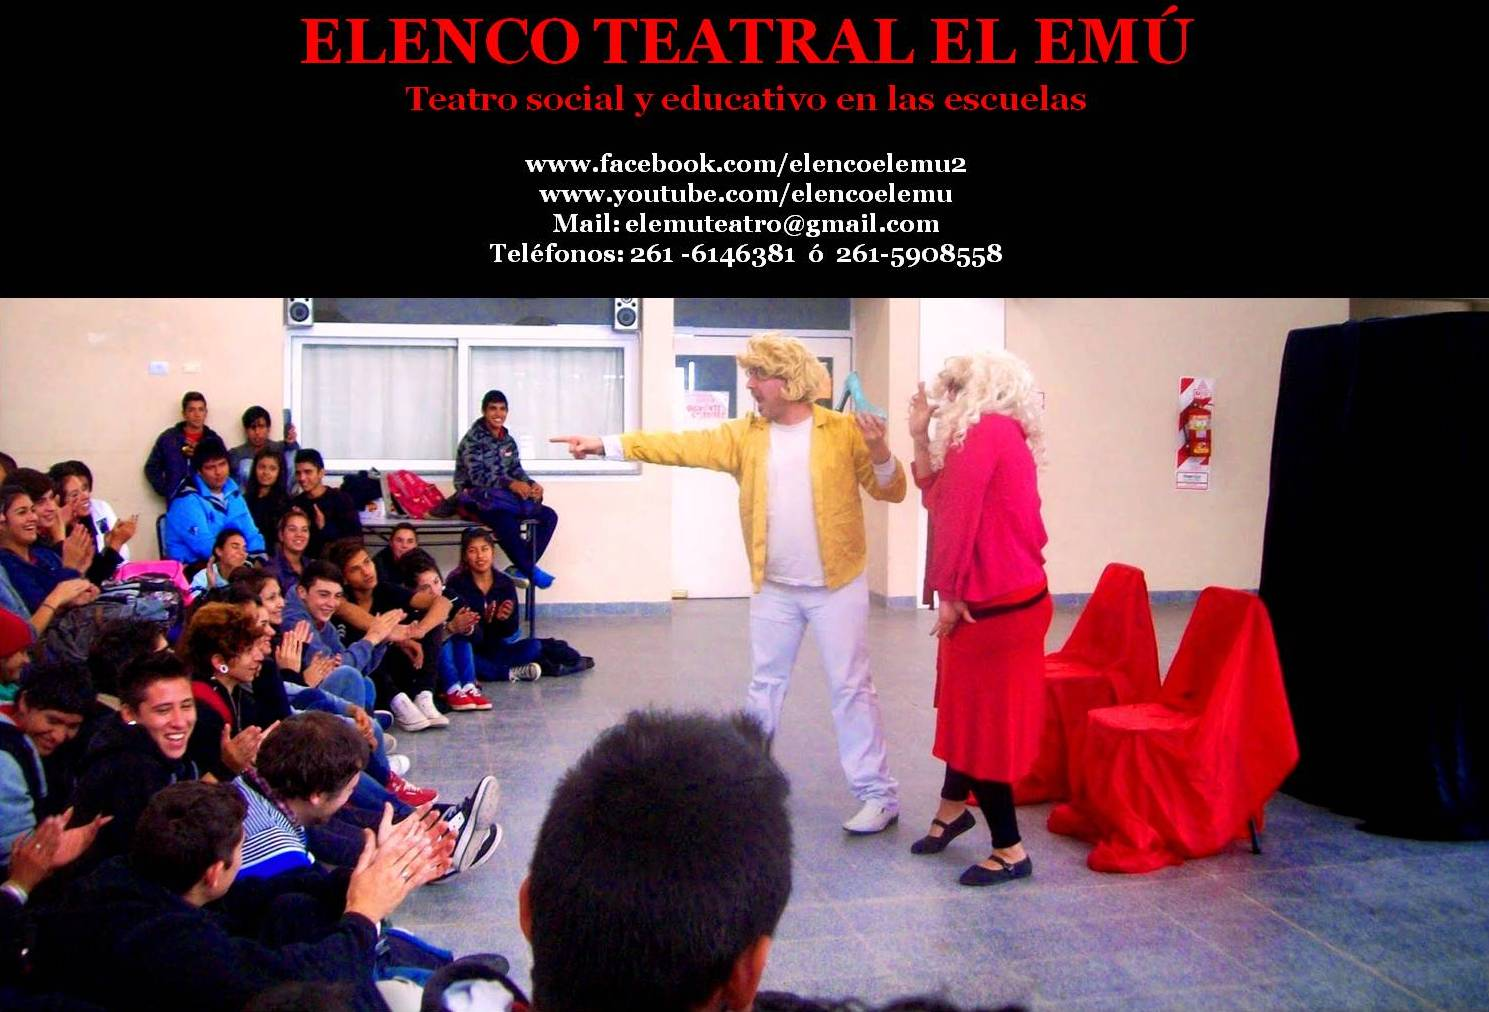 Elenco  Teatral  El  Emú